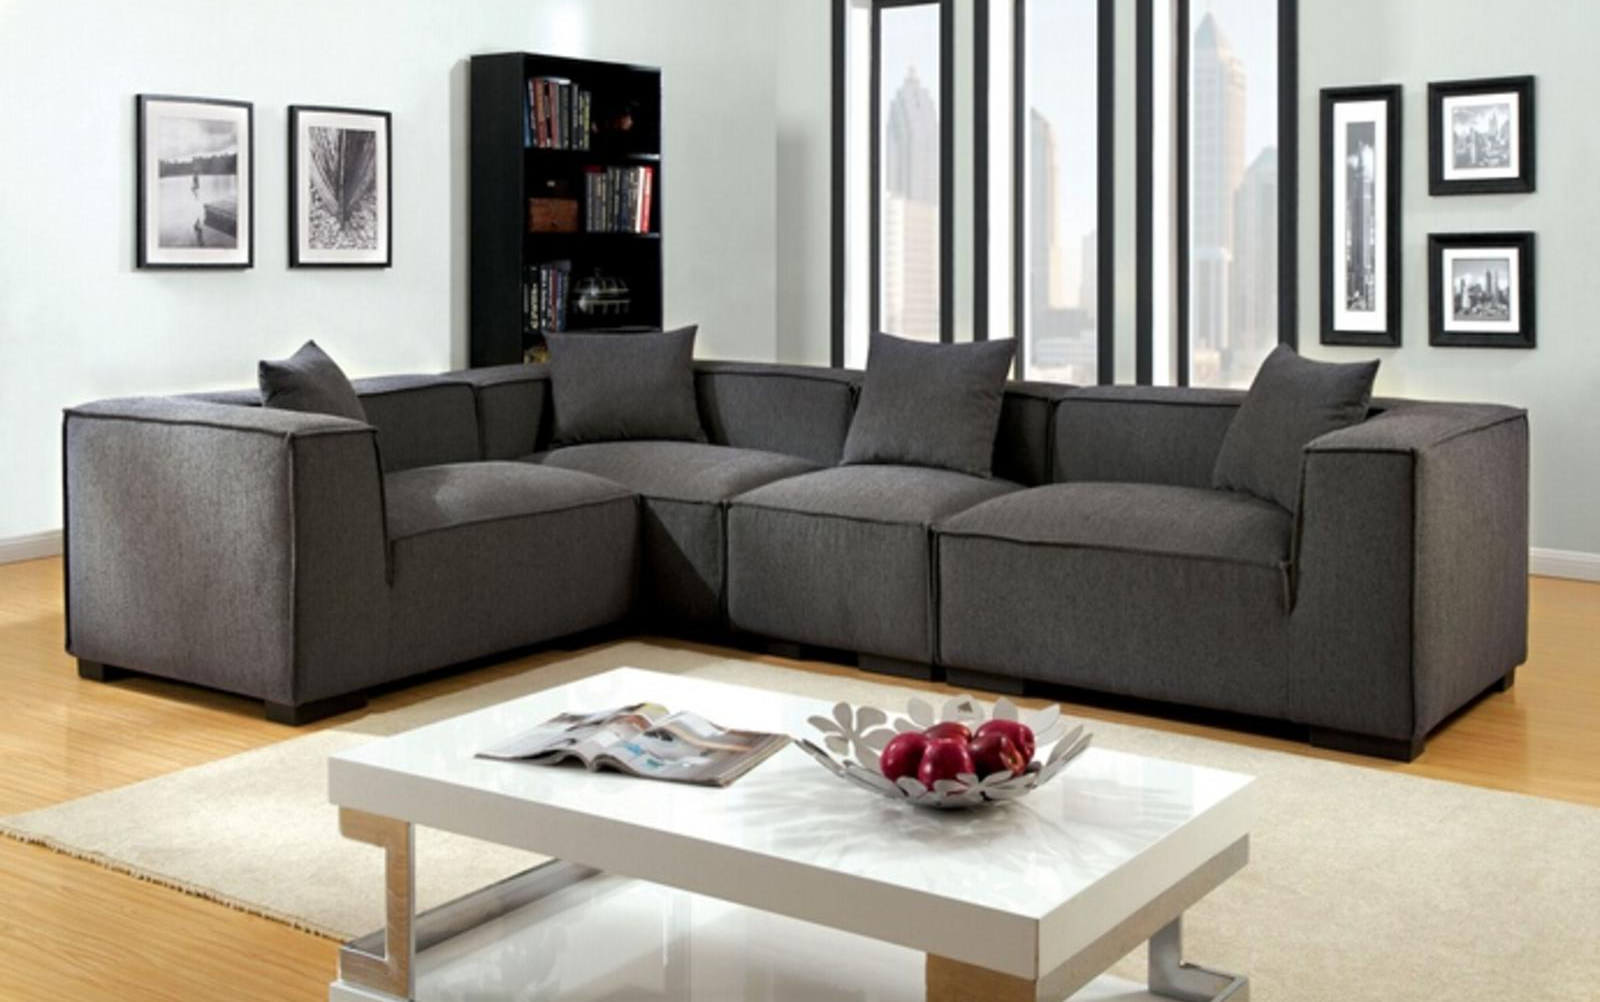 15 Best Ideas Corinthian Sectional Sofas | Sofa Ideas